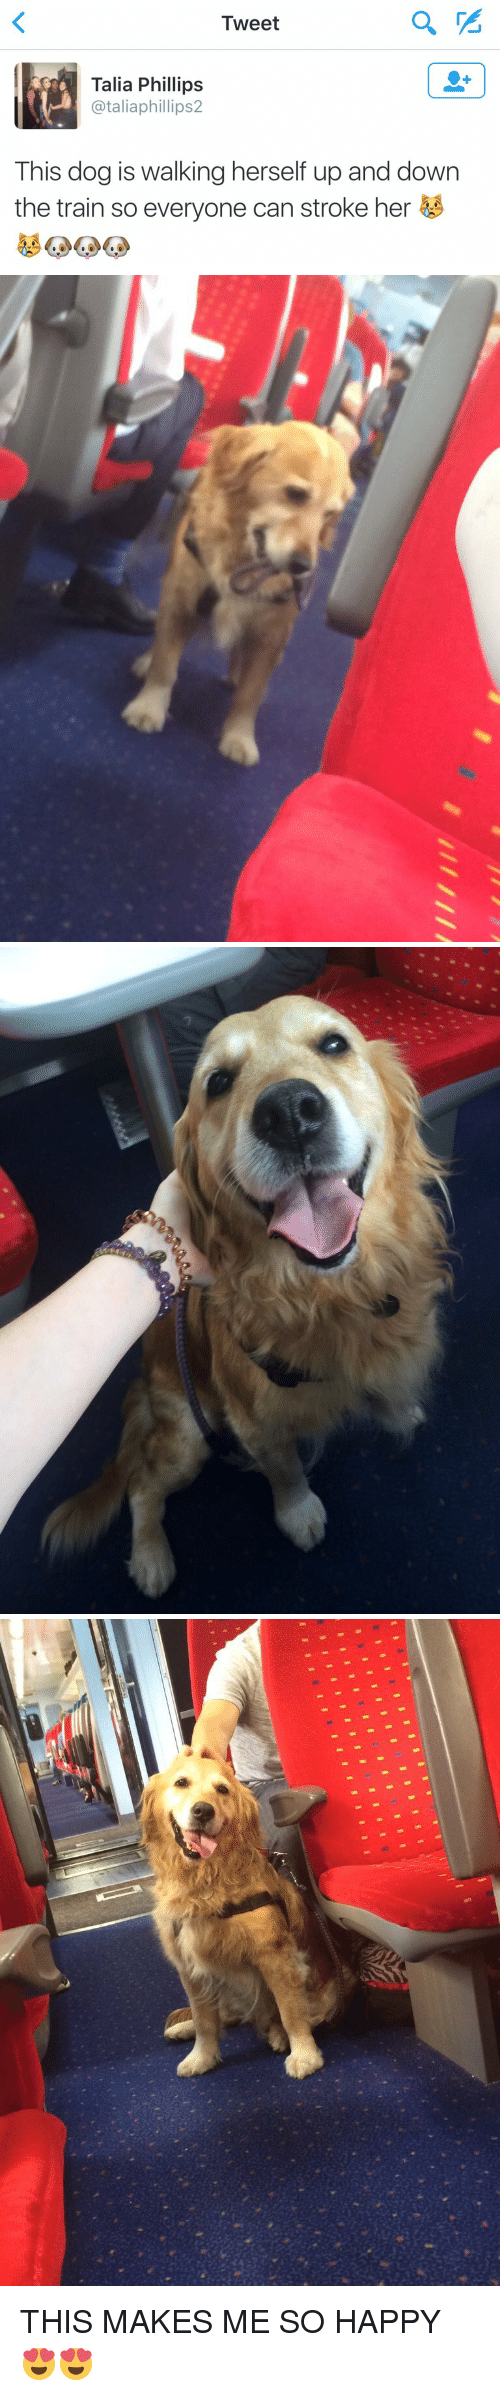 Funny: Tweet  Talia Phillips  ataliaphillips2  This dog is walking herself up and down  the train so everyone can stroke her   1111目!   u I THIS MAKES ME SO HAPPY 😍😍